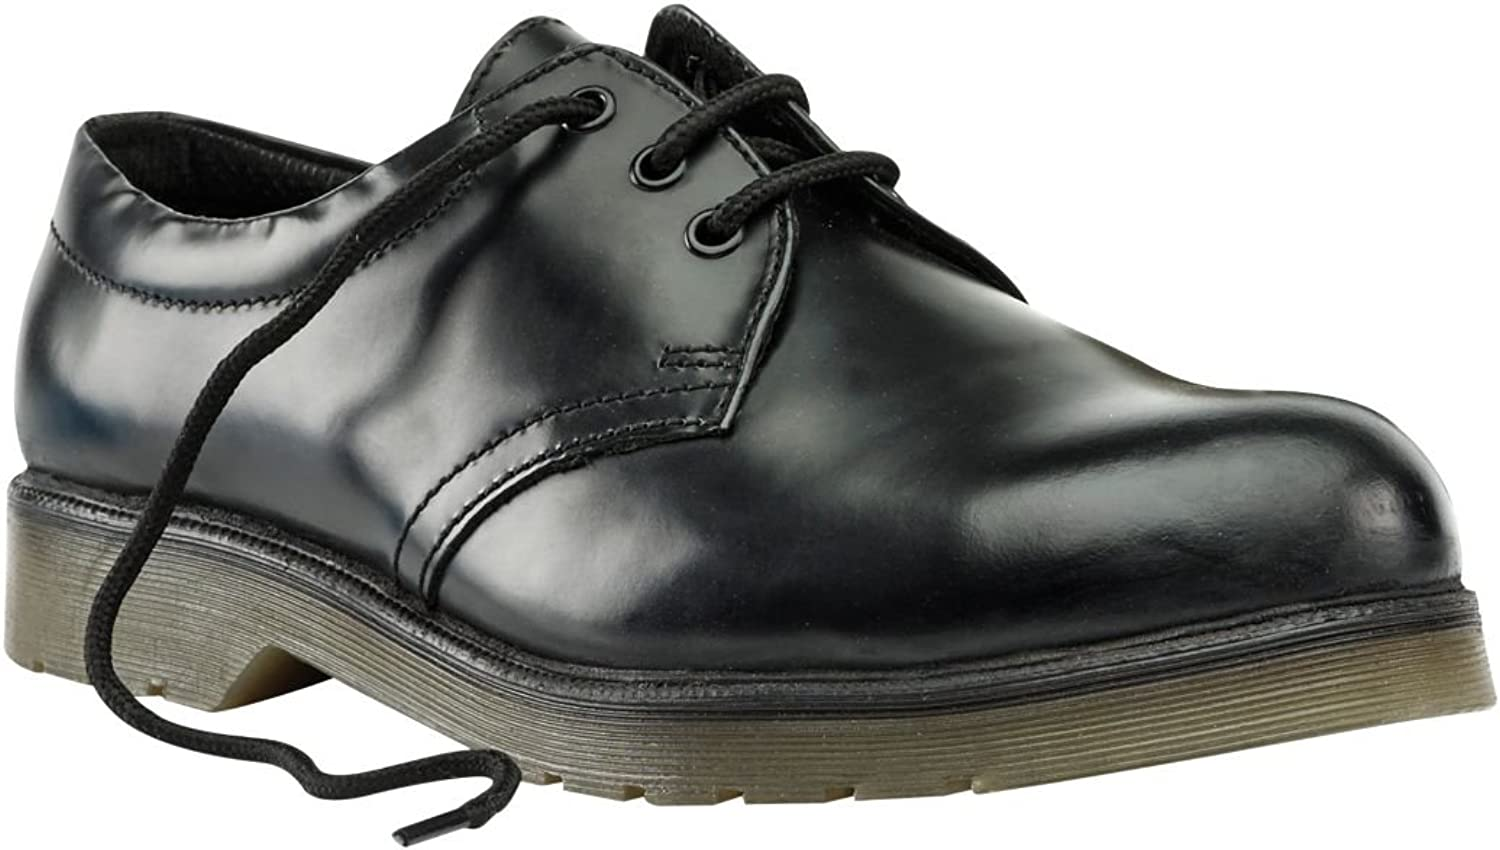 Sterling Steel Cushion Sole Safety shoes Black Size 10